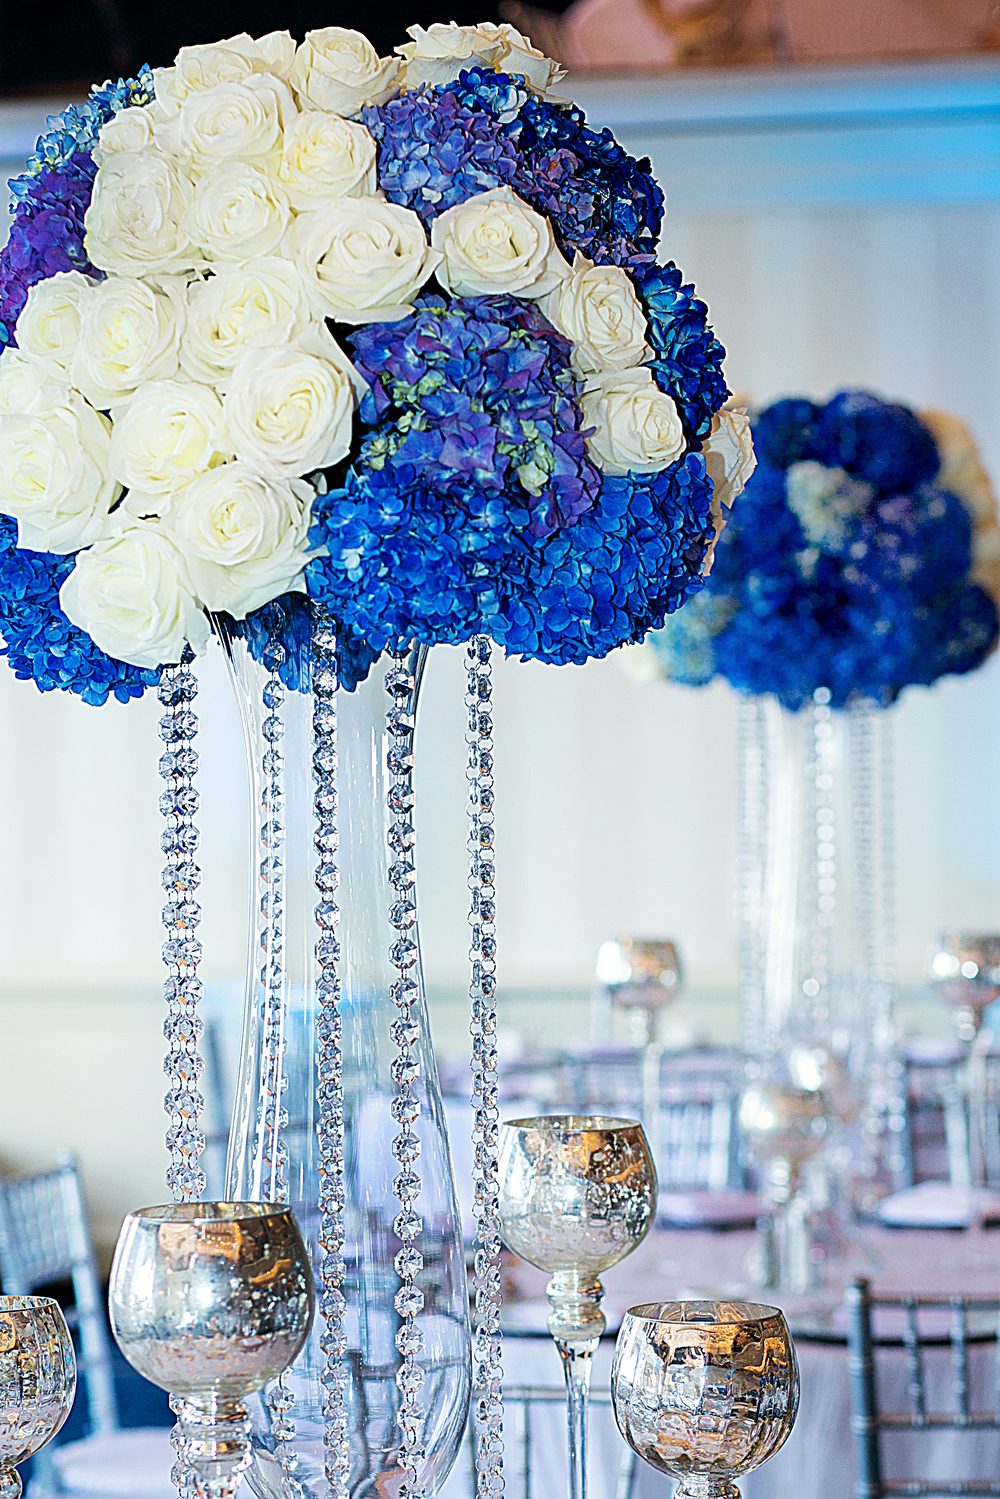 3_White and Blue Centerpiece_ArtQuest Flwoers.jpg